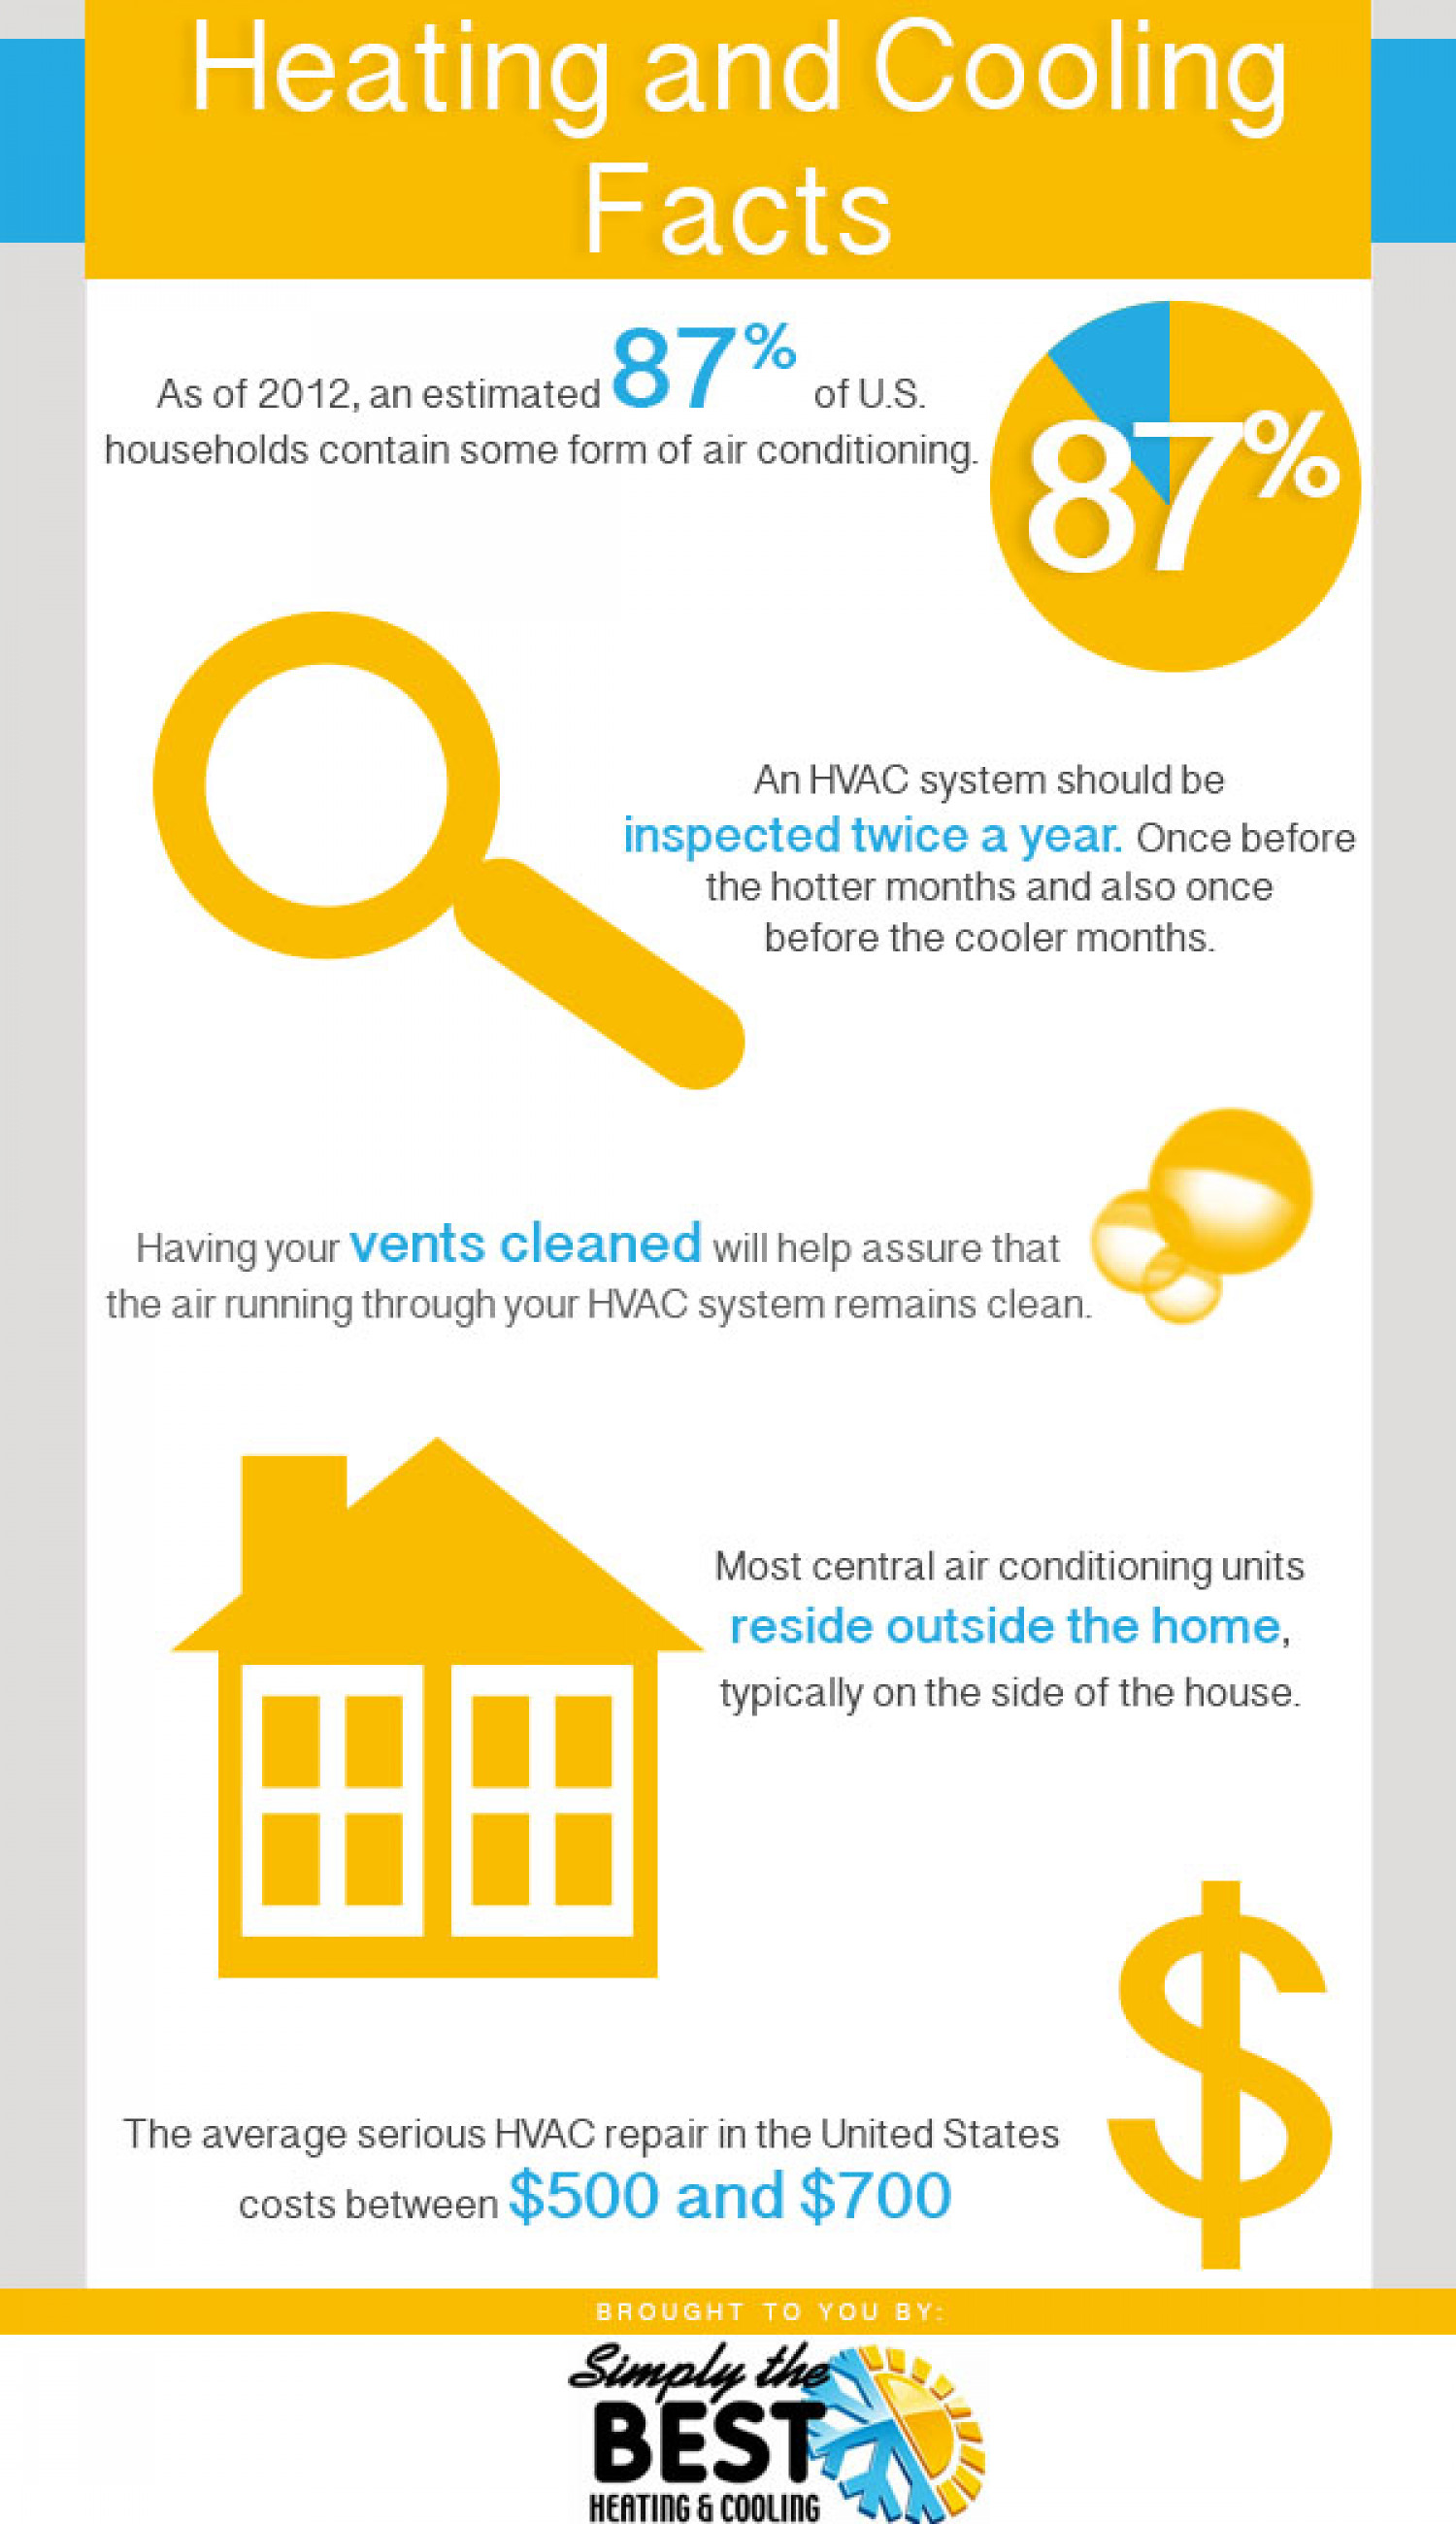 Heating and Cooling Facts Infographic